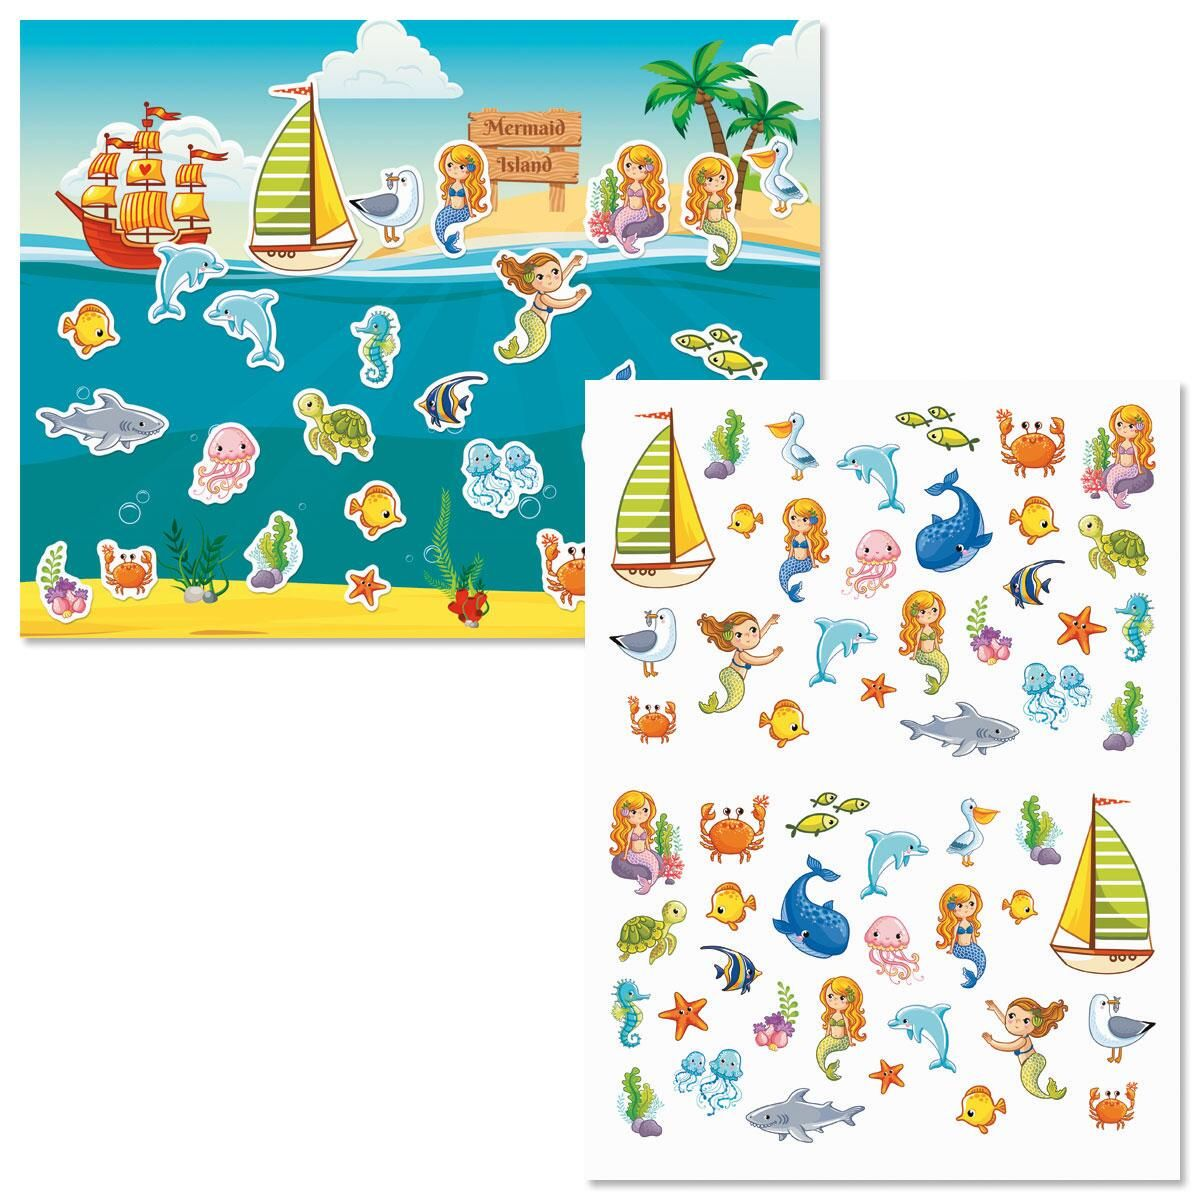 Mermaid Island Background Scenes and Stickers